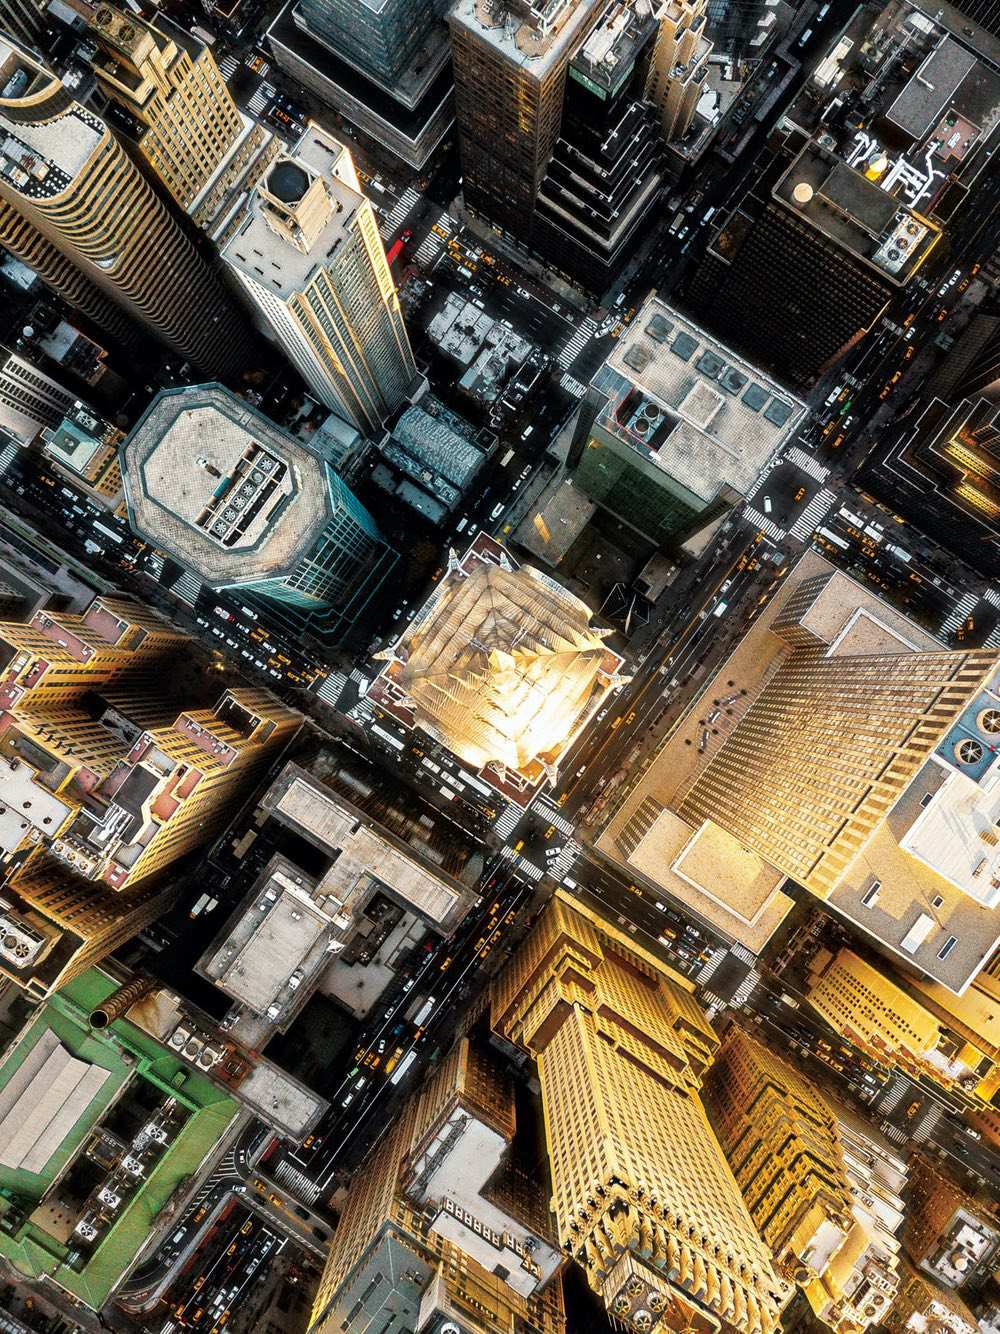 Chrysler Building - Amazing drone photos of New York City looking straight down 0000